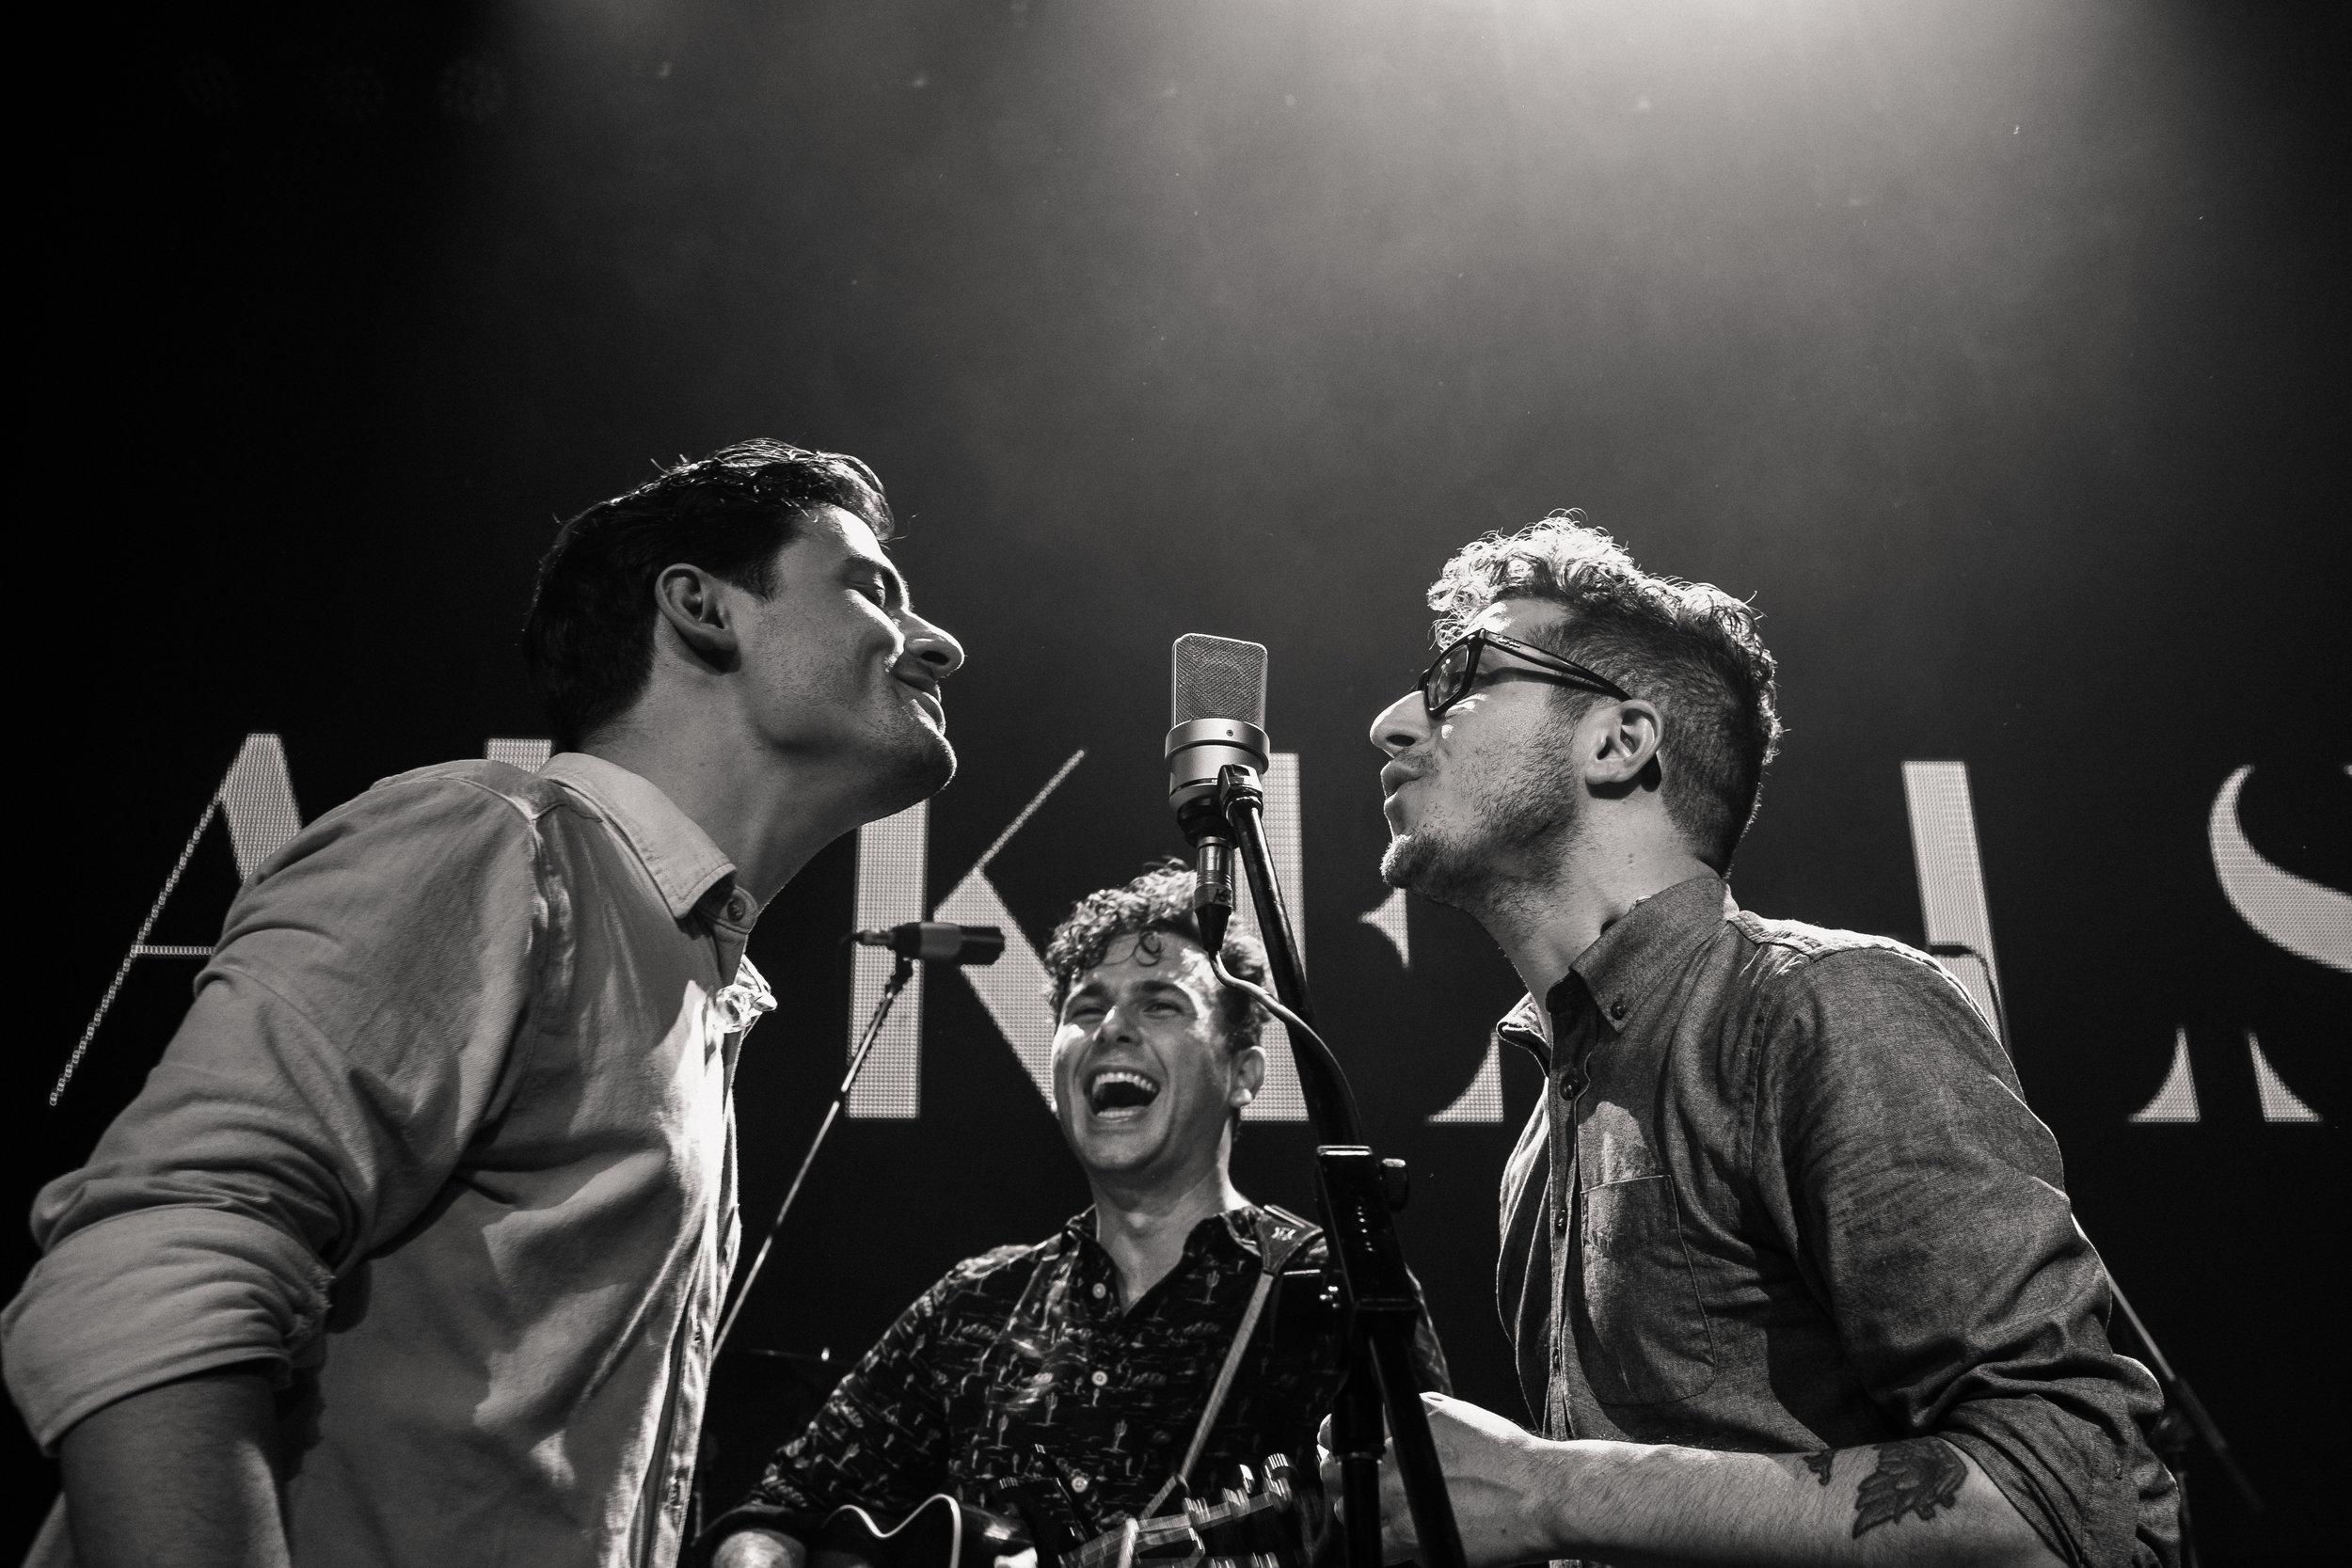 arkells-all-access_16605131267_o.jpg